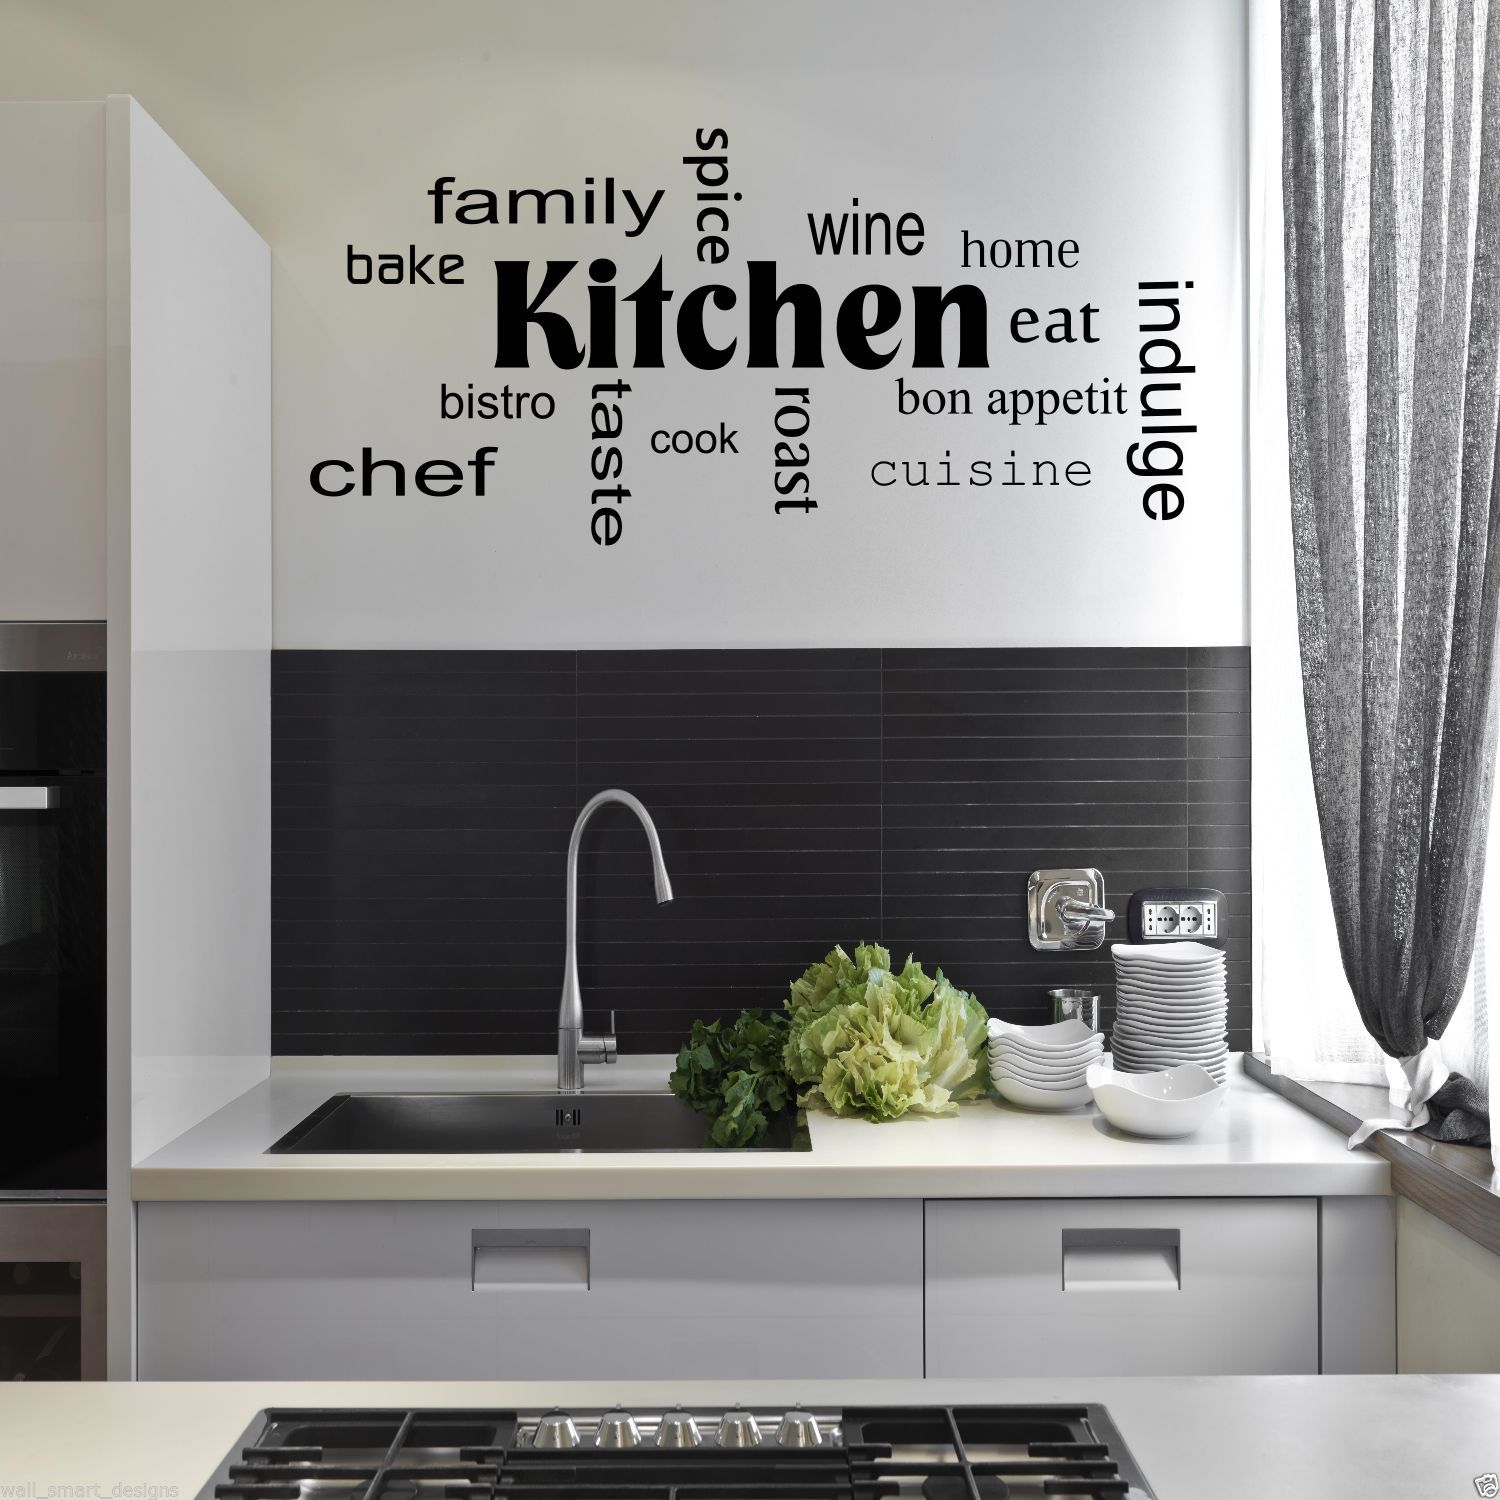 kitchen words phrases wall sticker quote decal stencil transfer decor wsd442 ebay. Black Bedroom Furniture Sets. Home Design Ideas